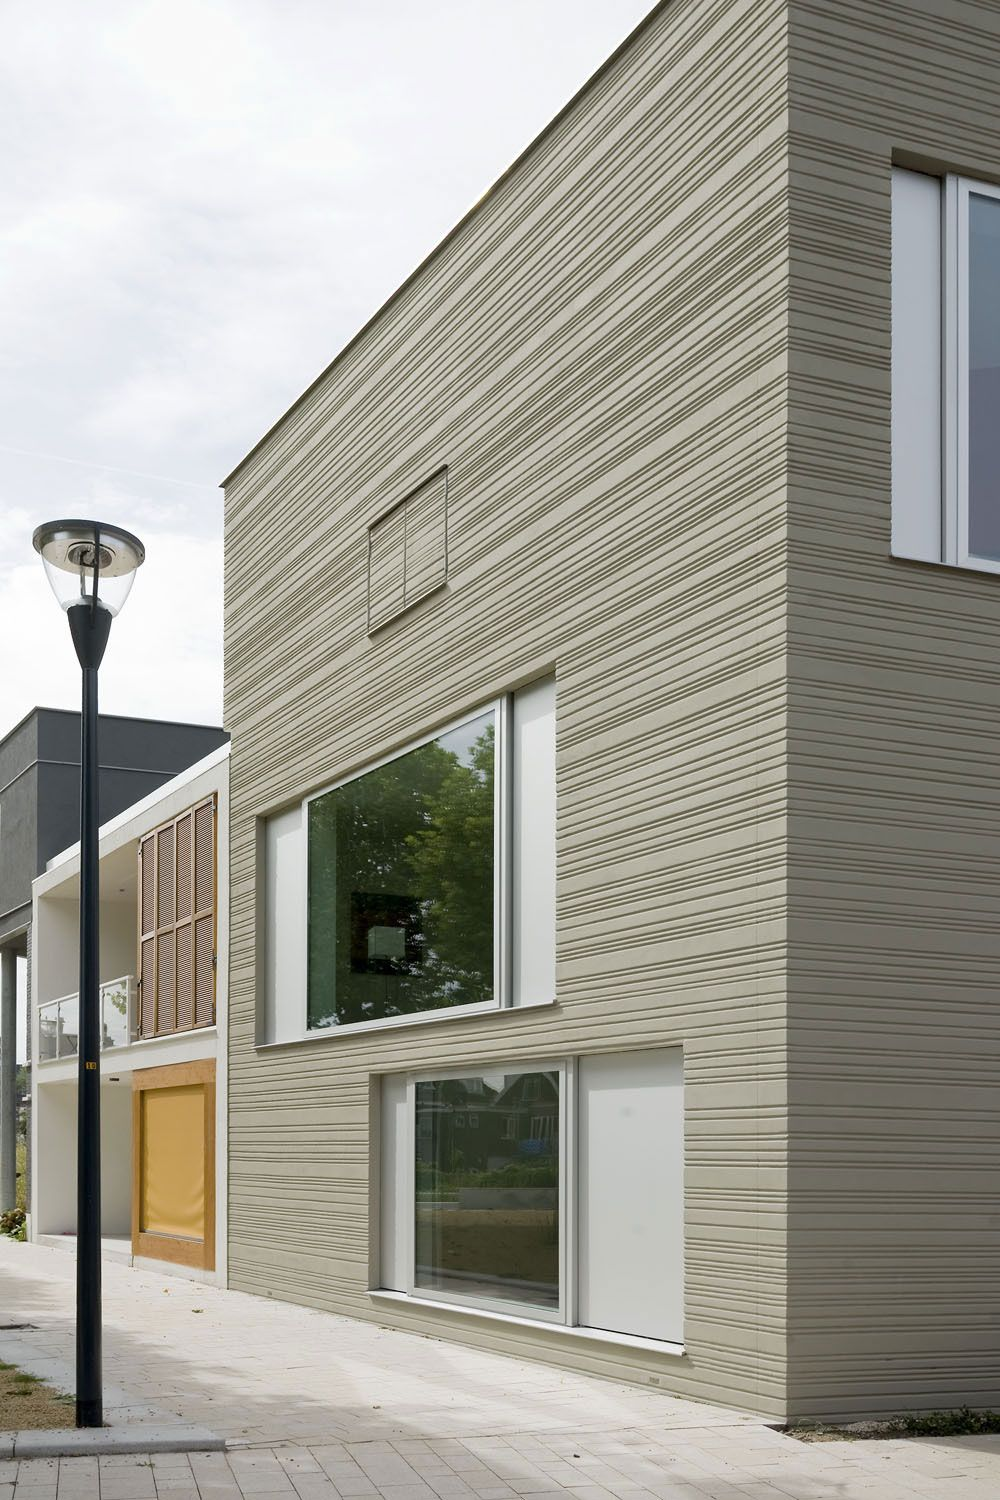 Eternit Fassade Sockel Stripe House 3 Outer Spaces Places Facade